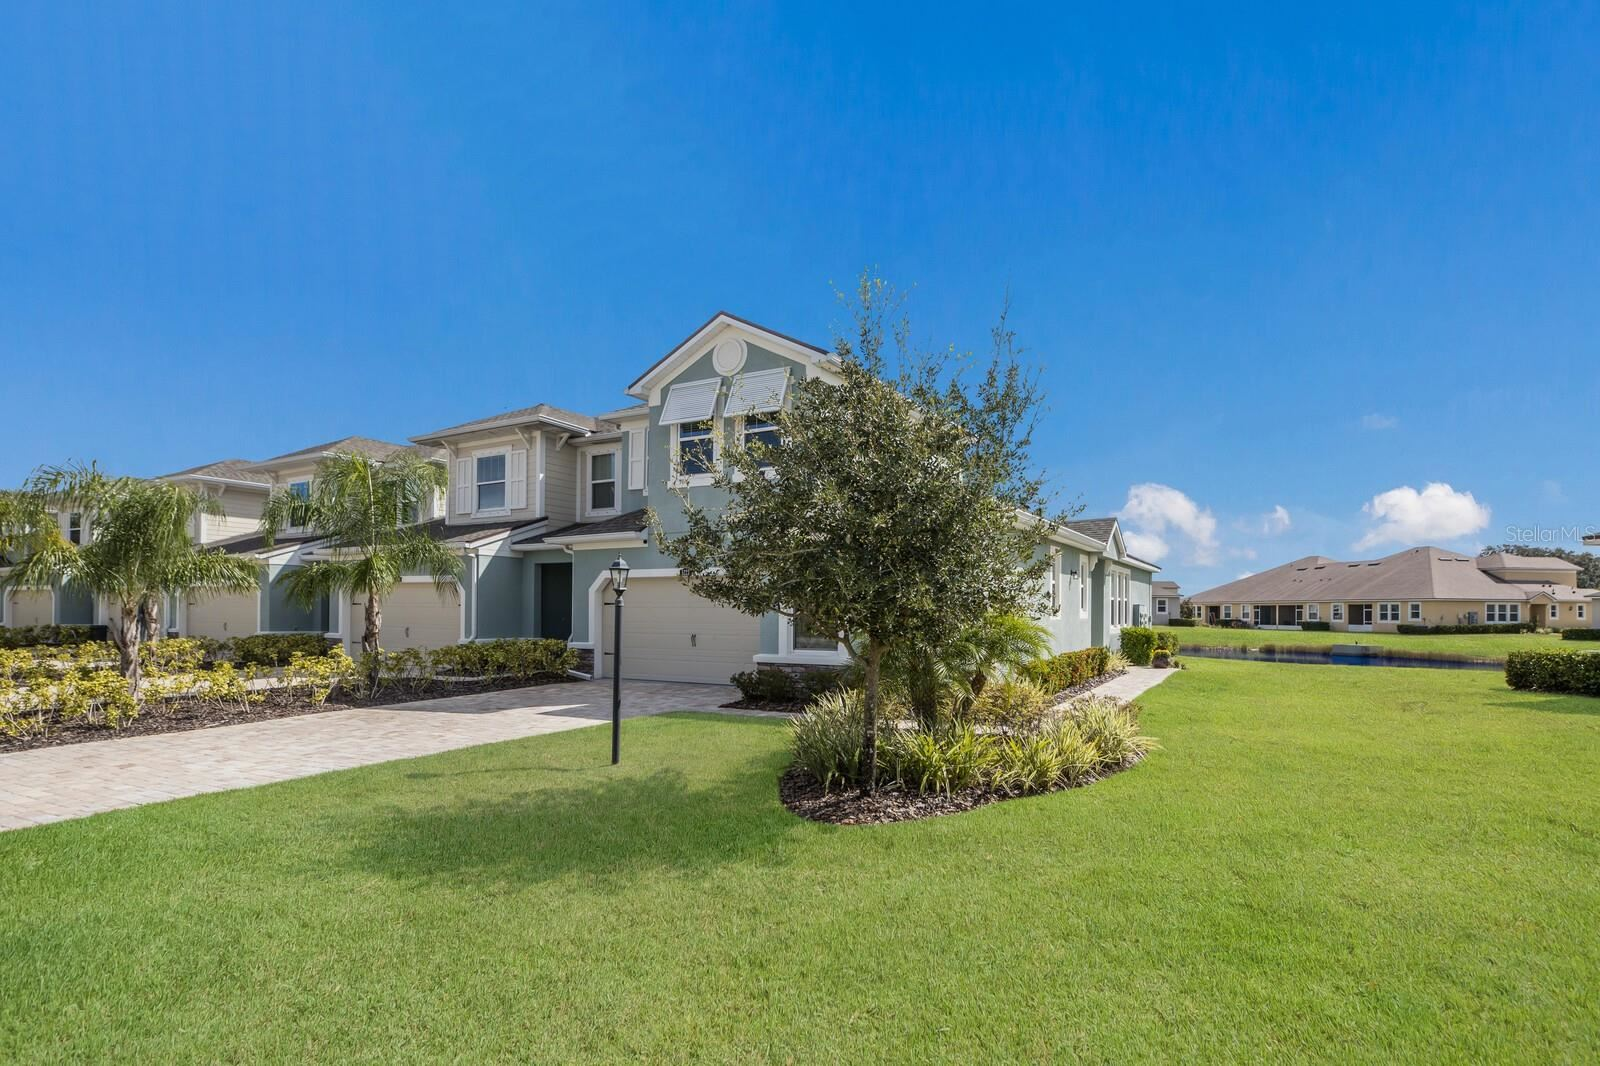 Photo of 5223 BLOSSOM COVE, LAKEWOOD RANCH, FL 34211 (MLS # A4515405)